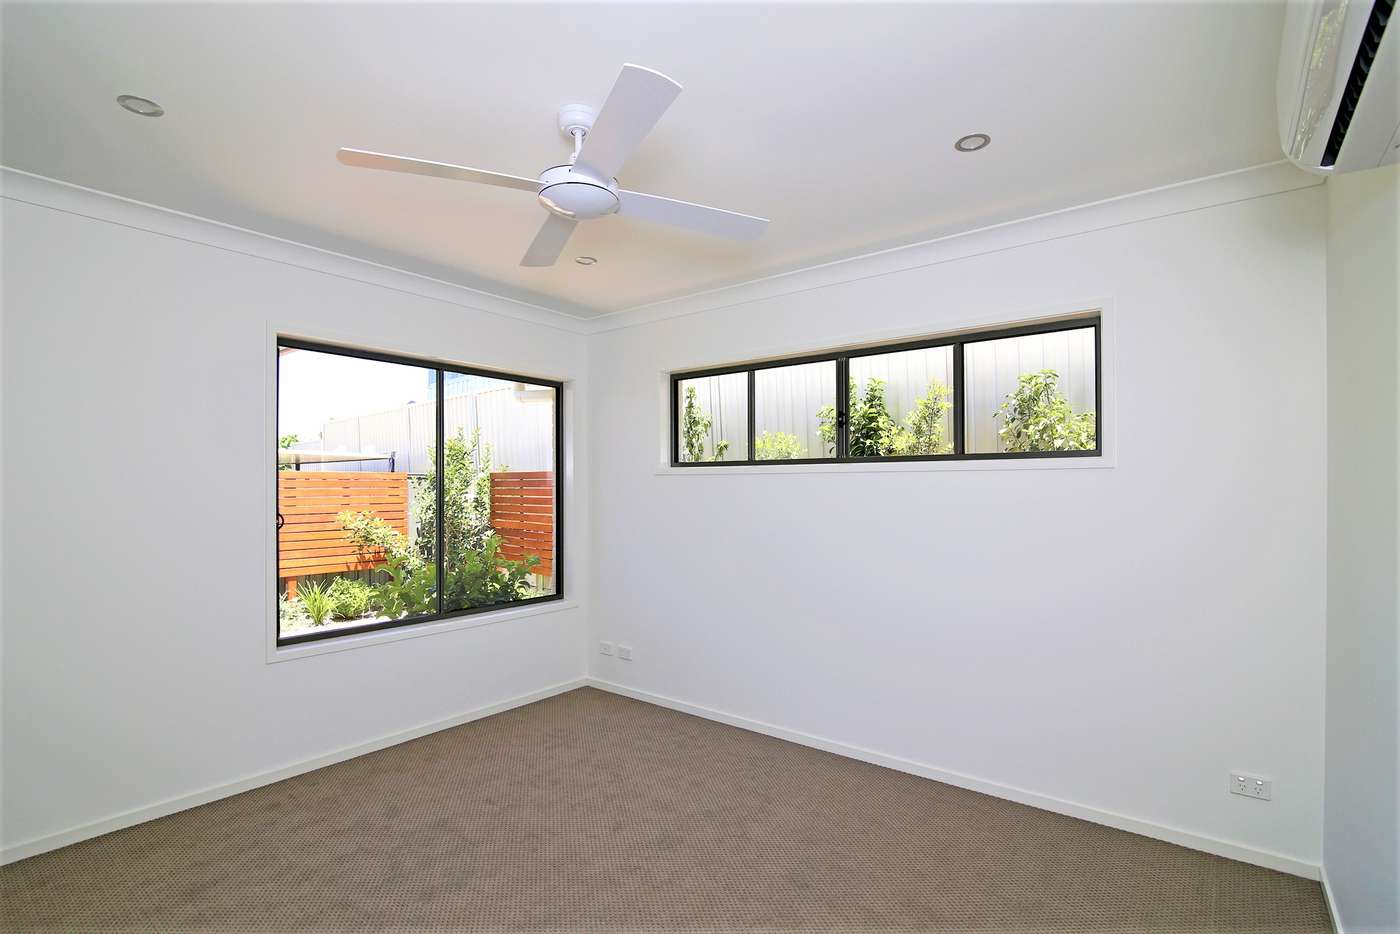 Seventh view of Homely house listing, 5A Hyperno Close, Raceview QLD 4305